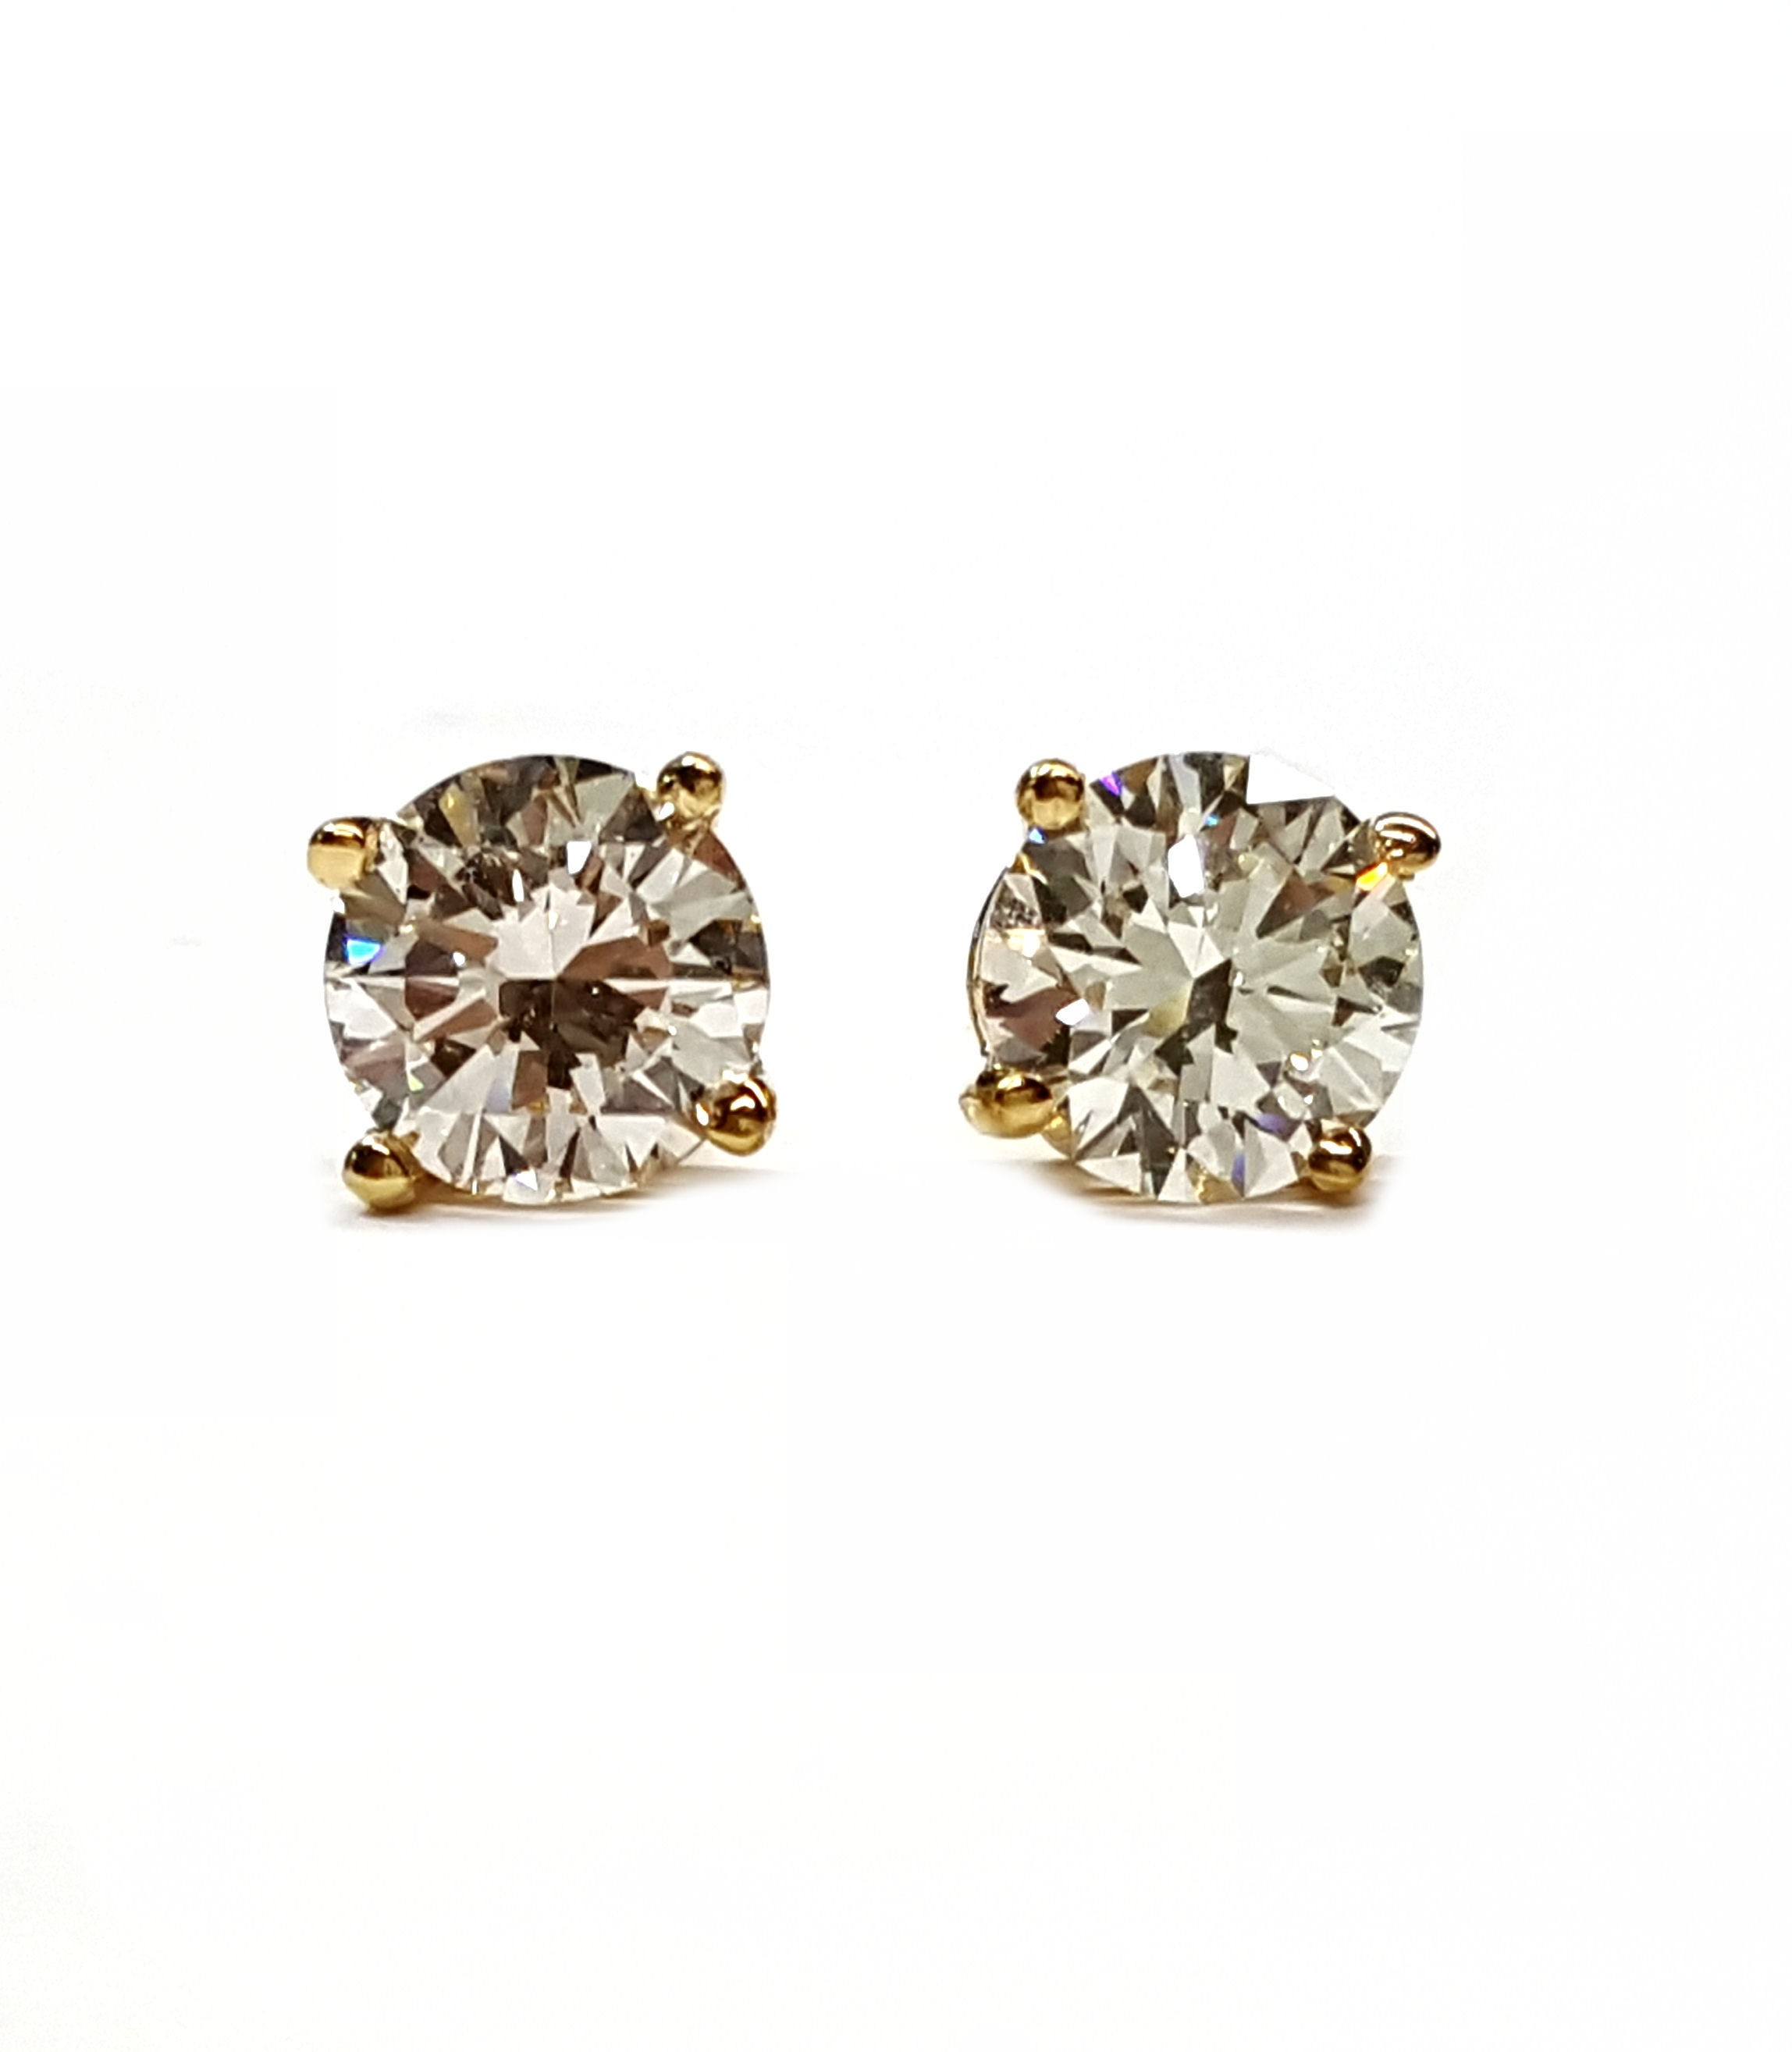 Diamond stud earrings set 4 prong yellow gold 2=35pts. t.w.